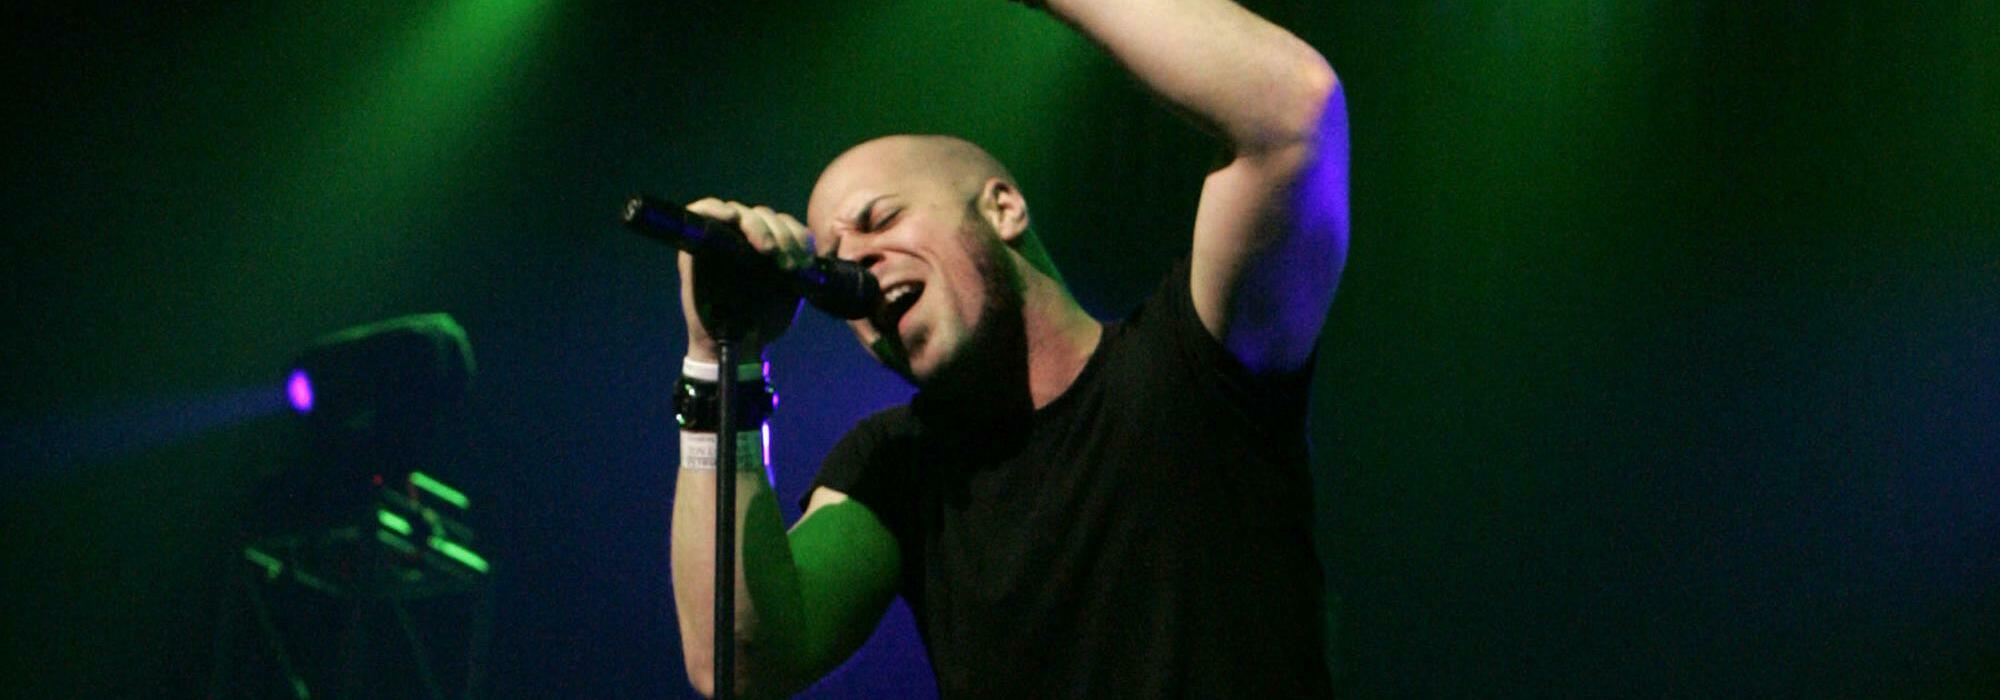 A Daughtry live event